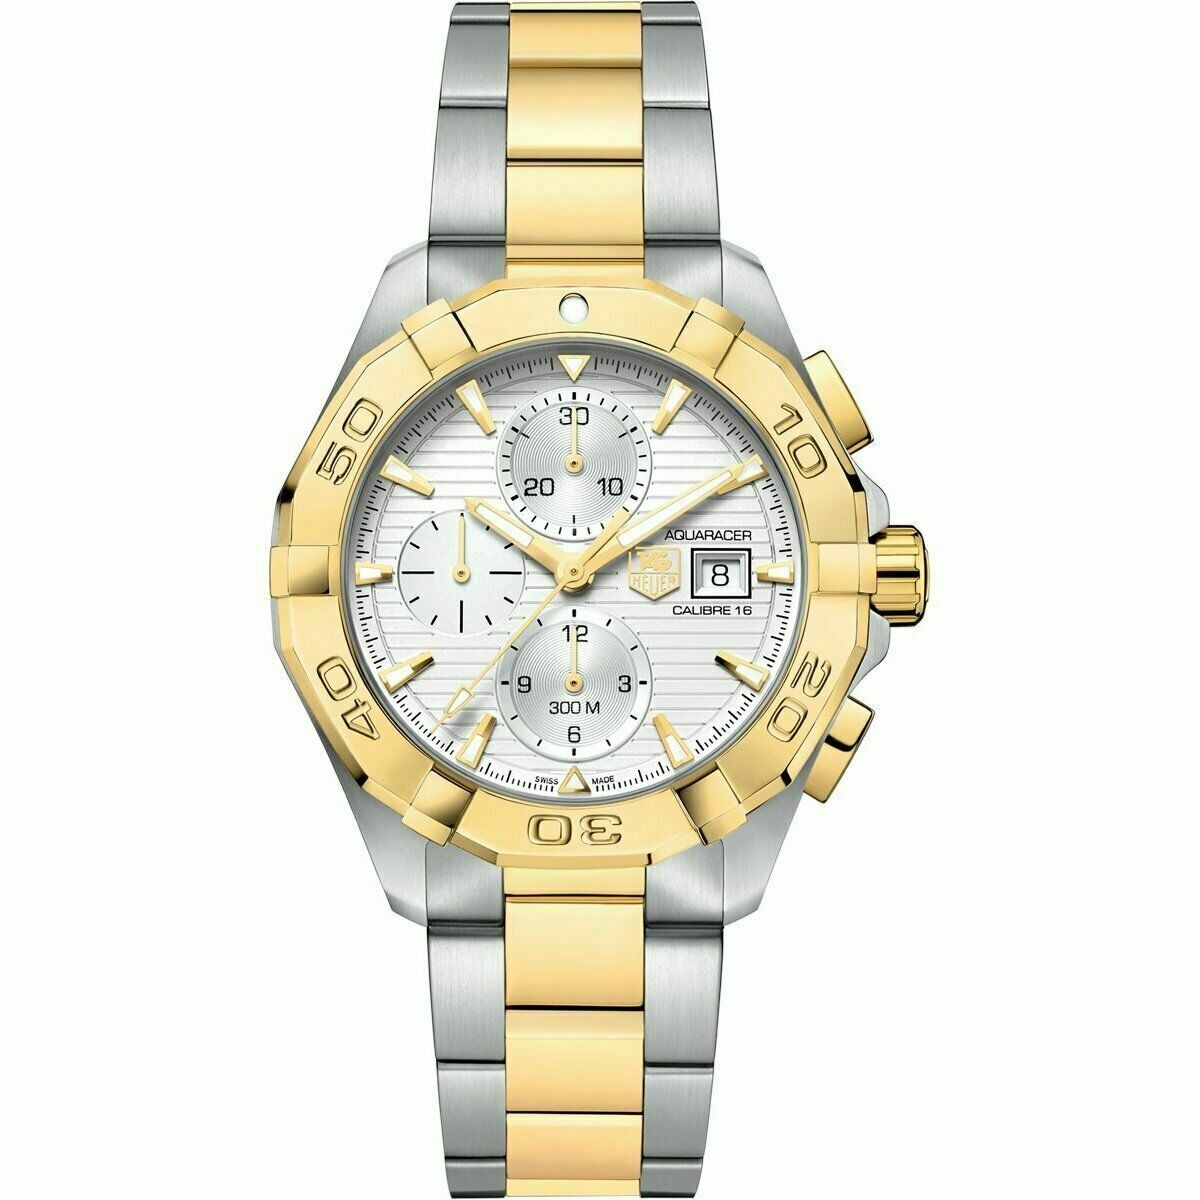 TAG HEUER MEN'S AQUARACER CAY2121.BB0923 AUTOMATIC CHRONOGRAPH GOLD 43MM WATCH